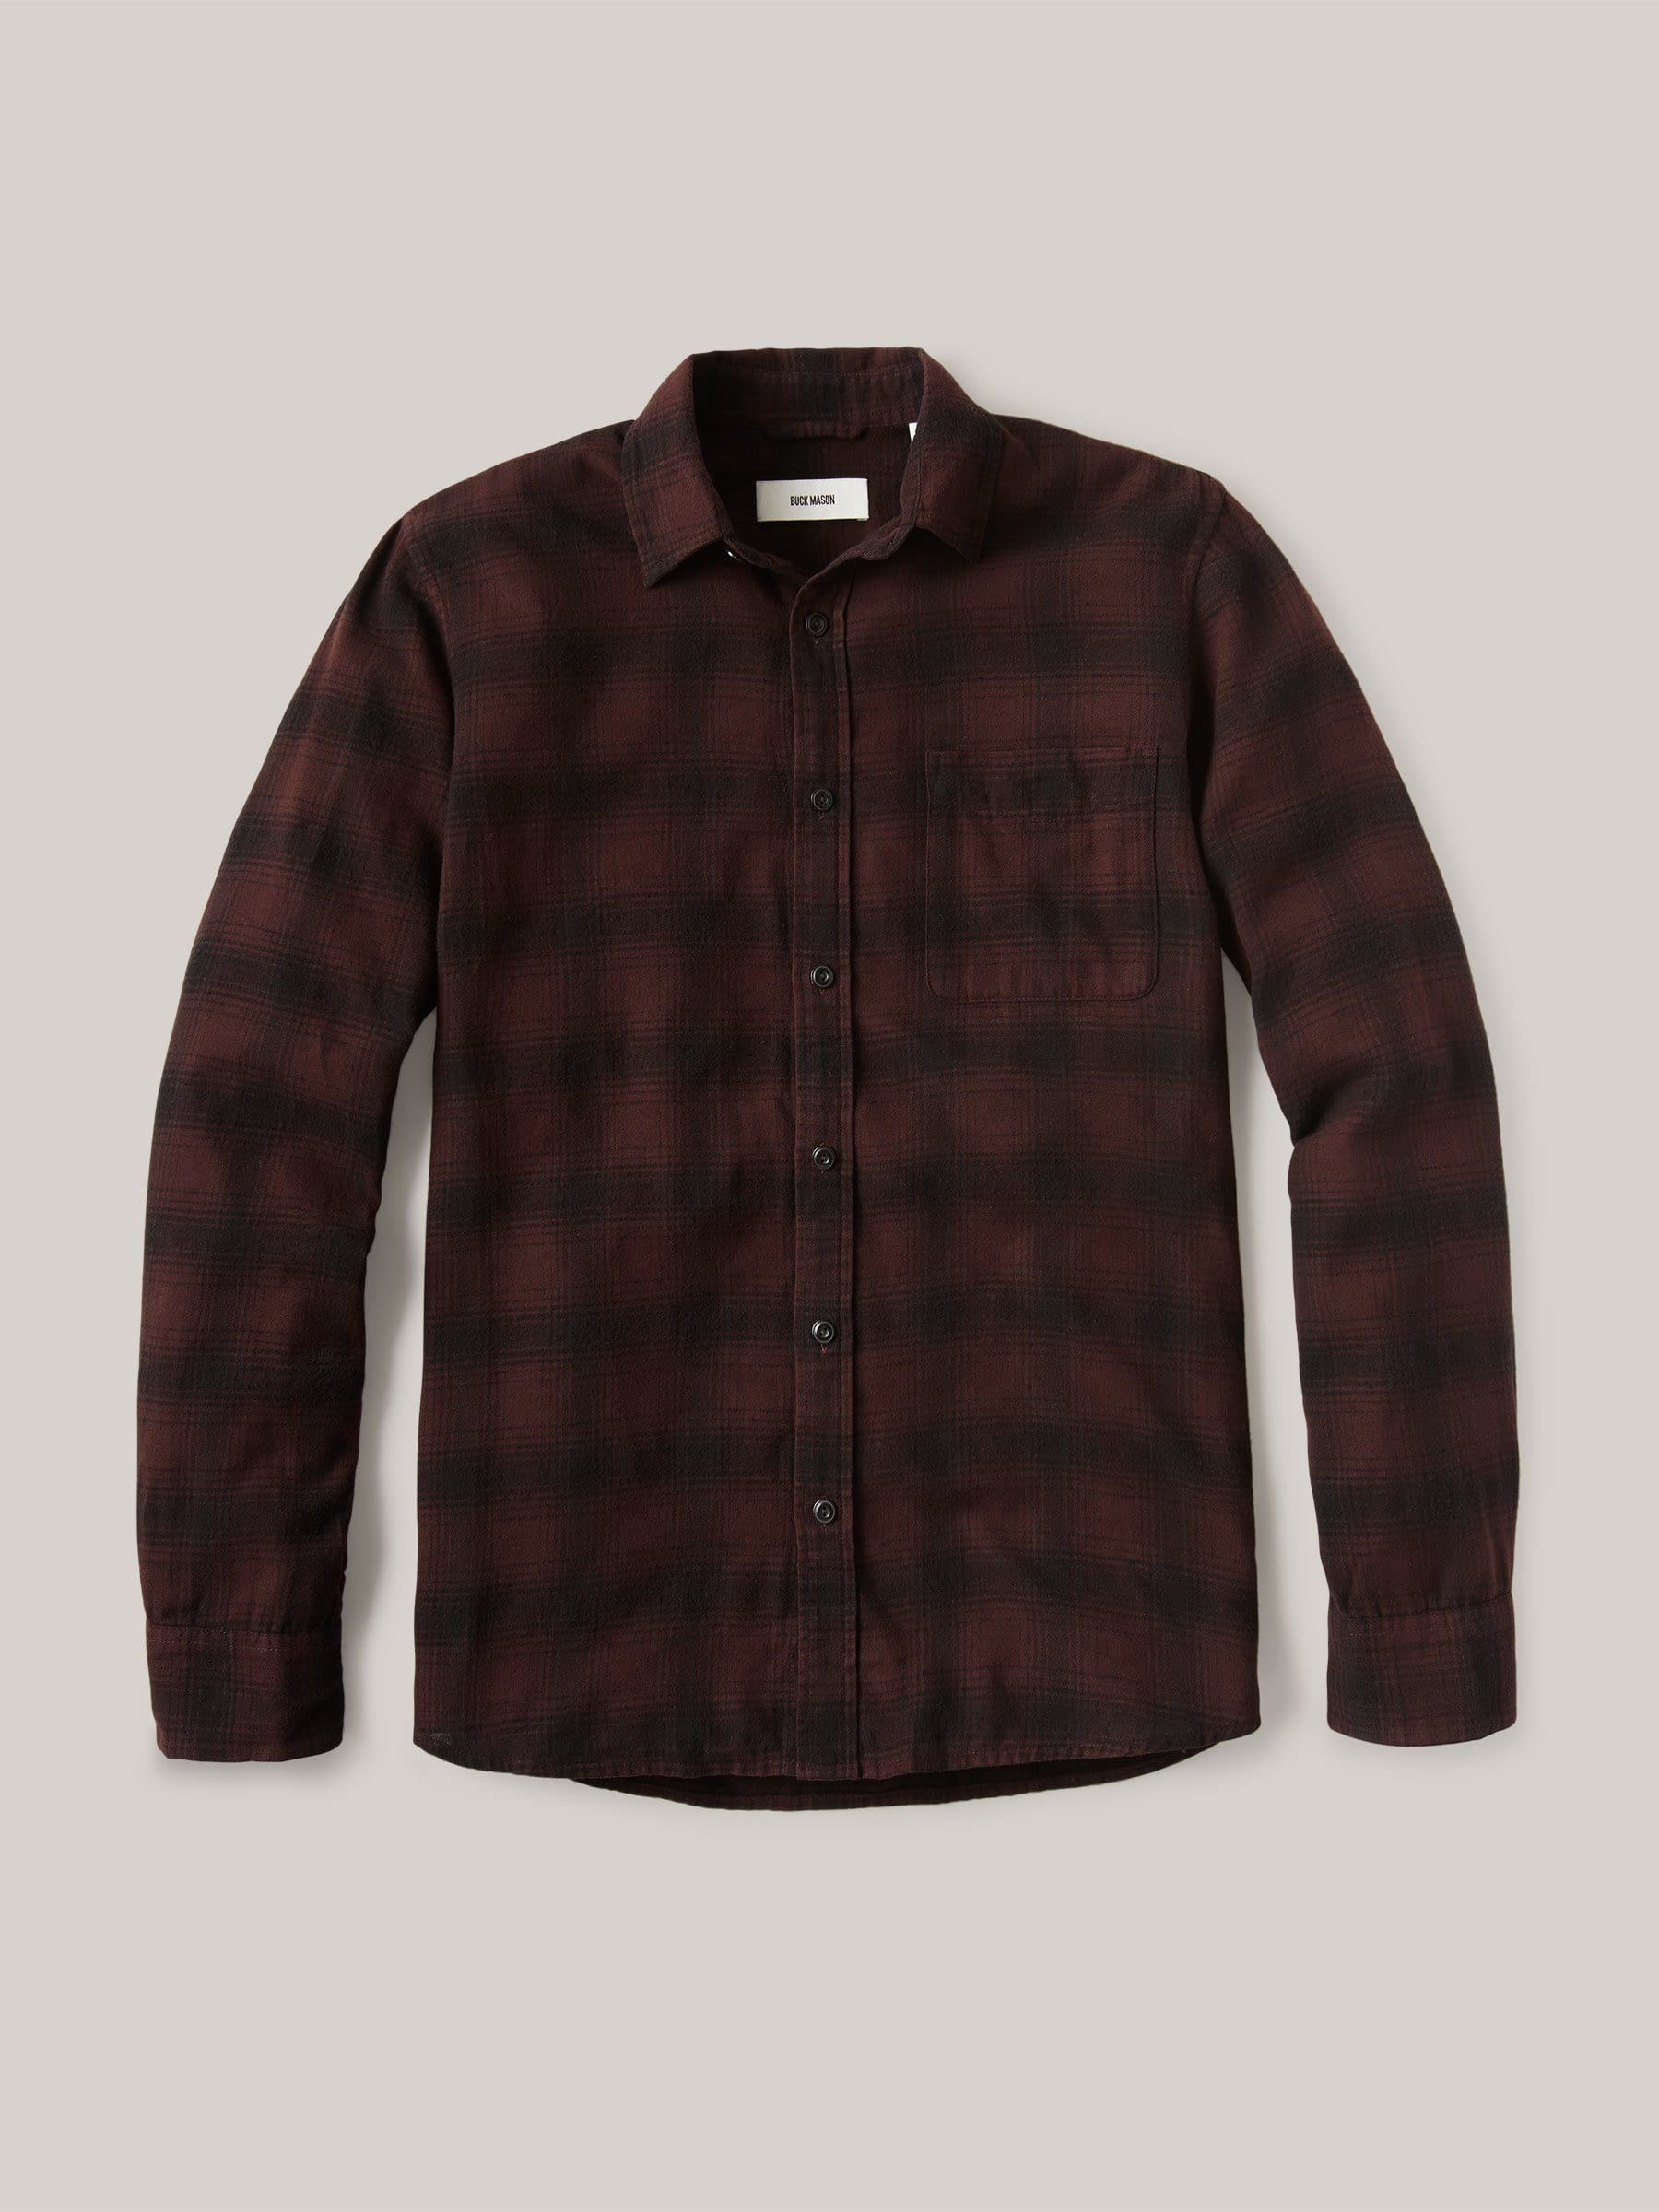 Buck Mason - Red/Black High Desert Flannel Vintage One Pocket Shirt